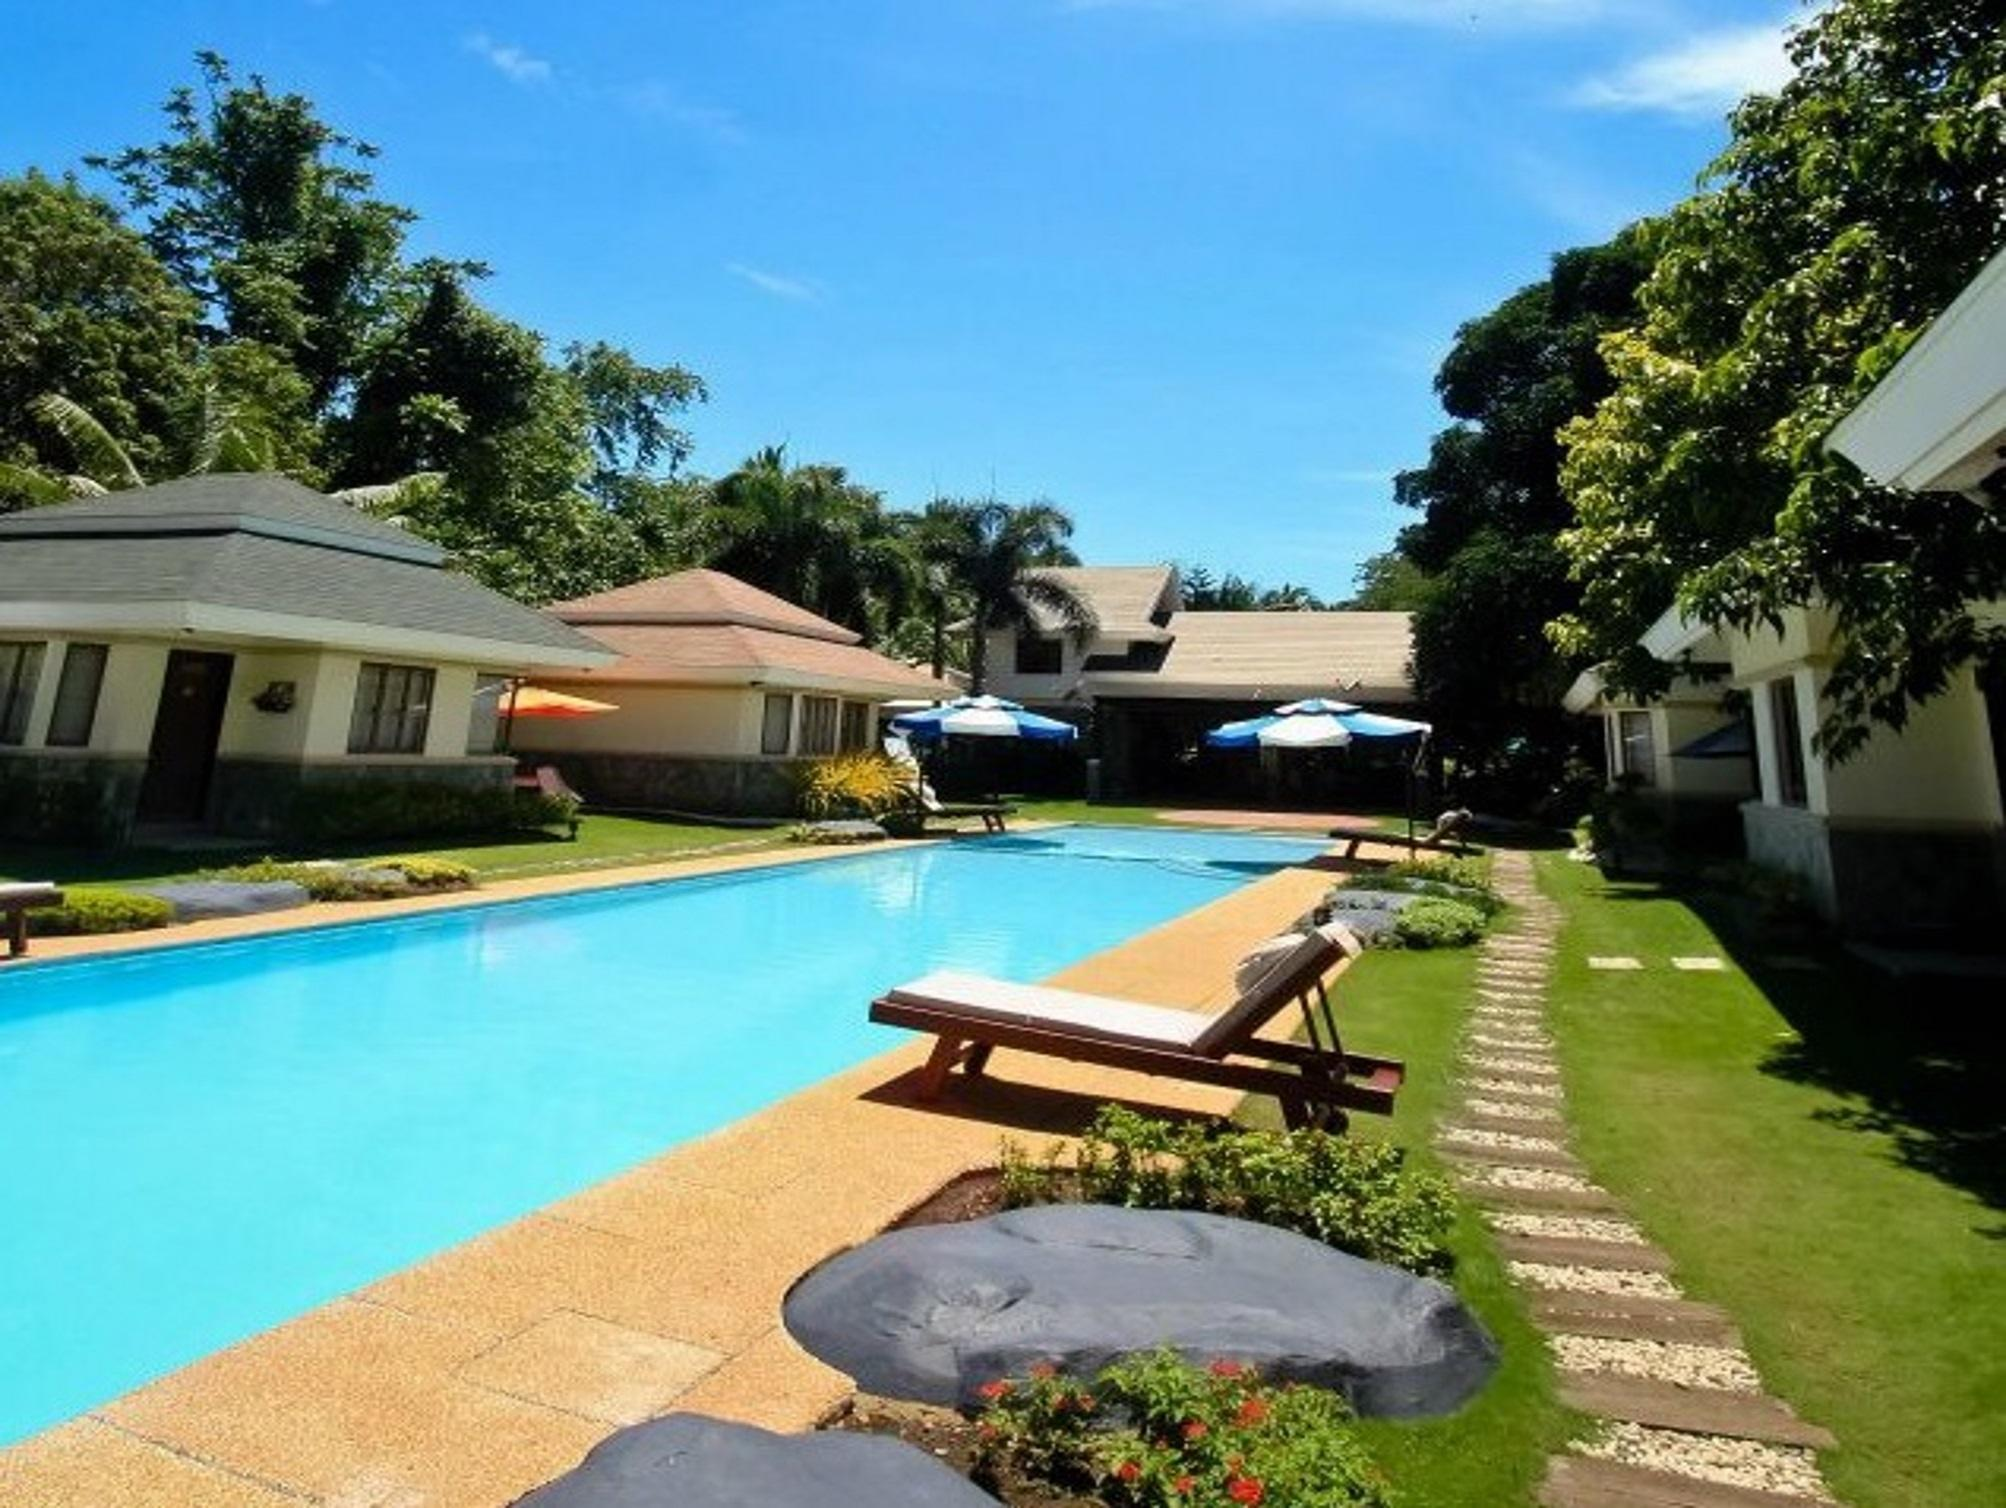 Bali Bali Beach Resort - Hotels and Accommodation in Philippines, Asia